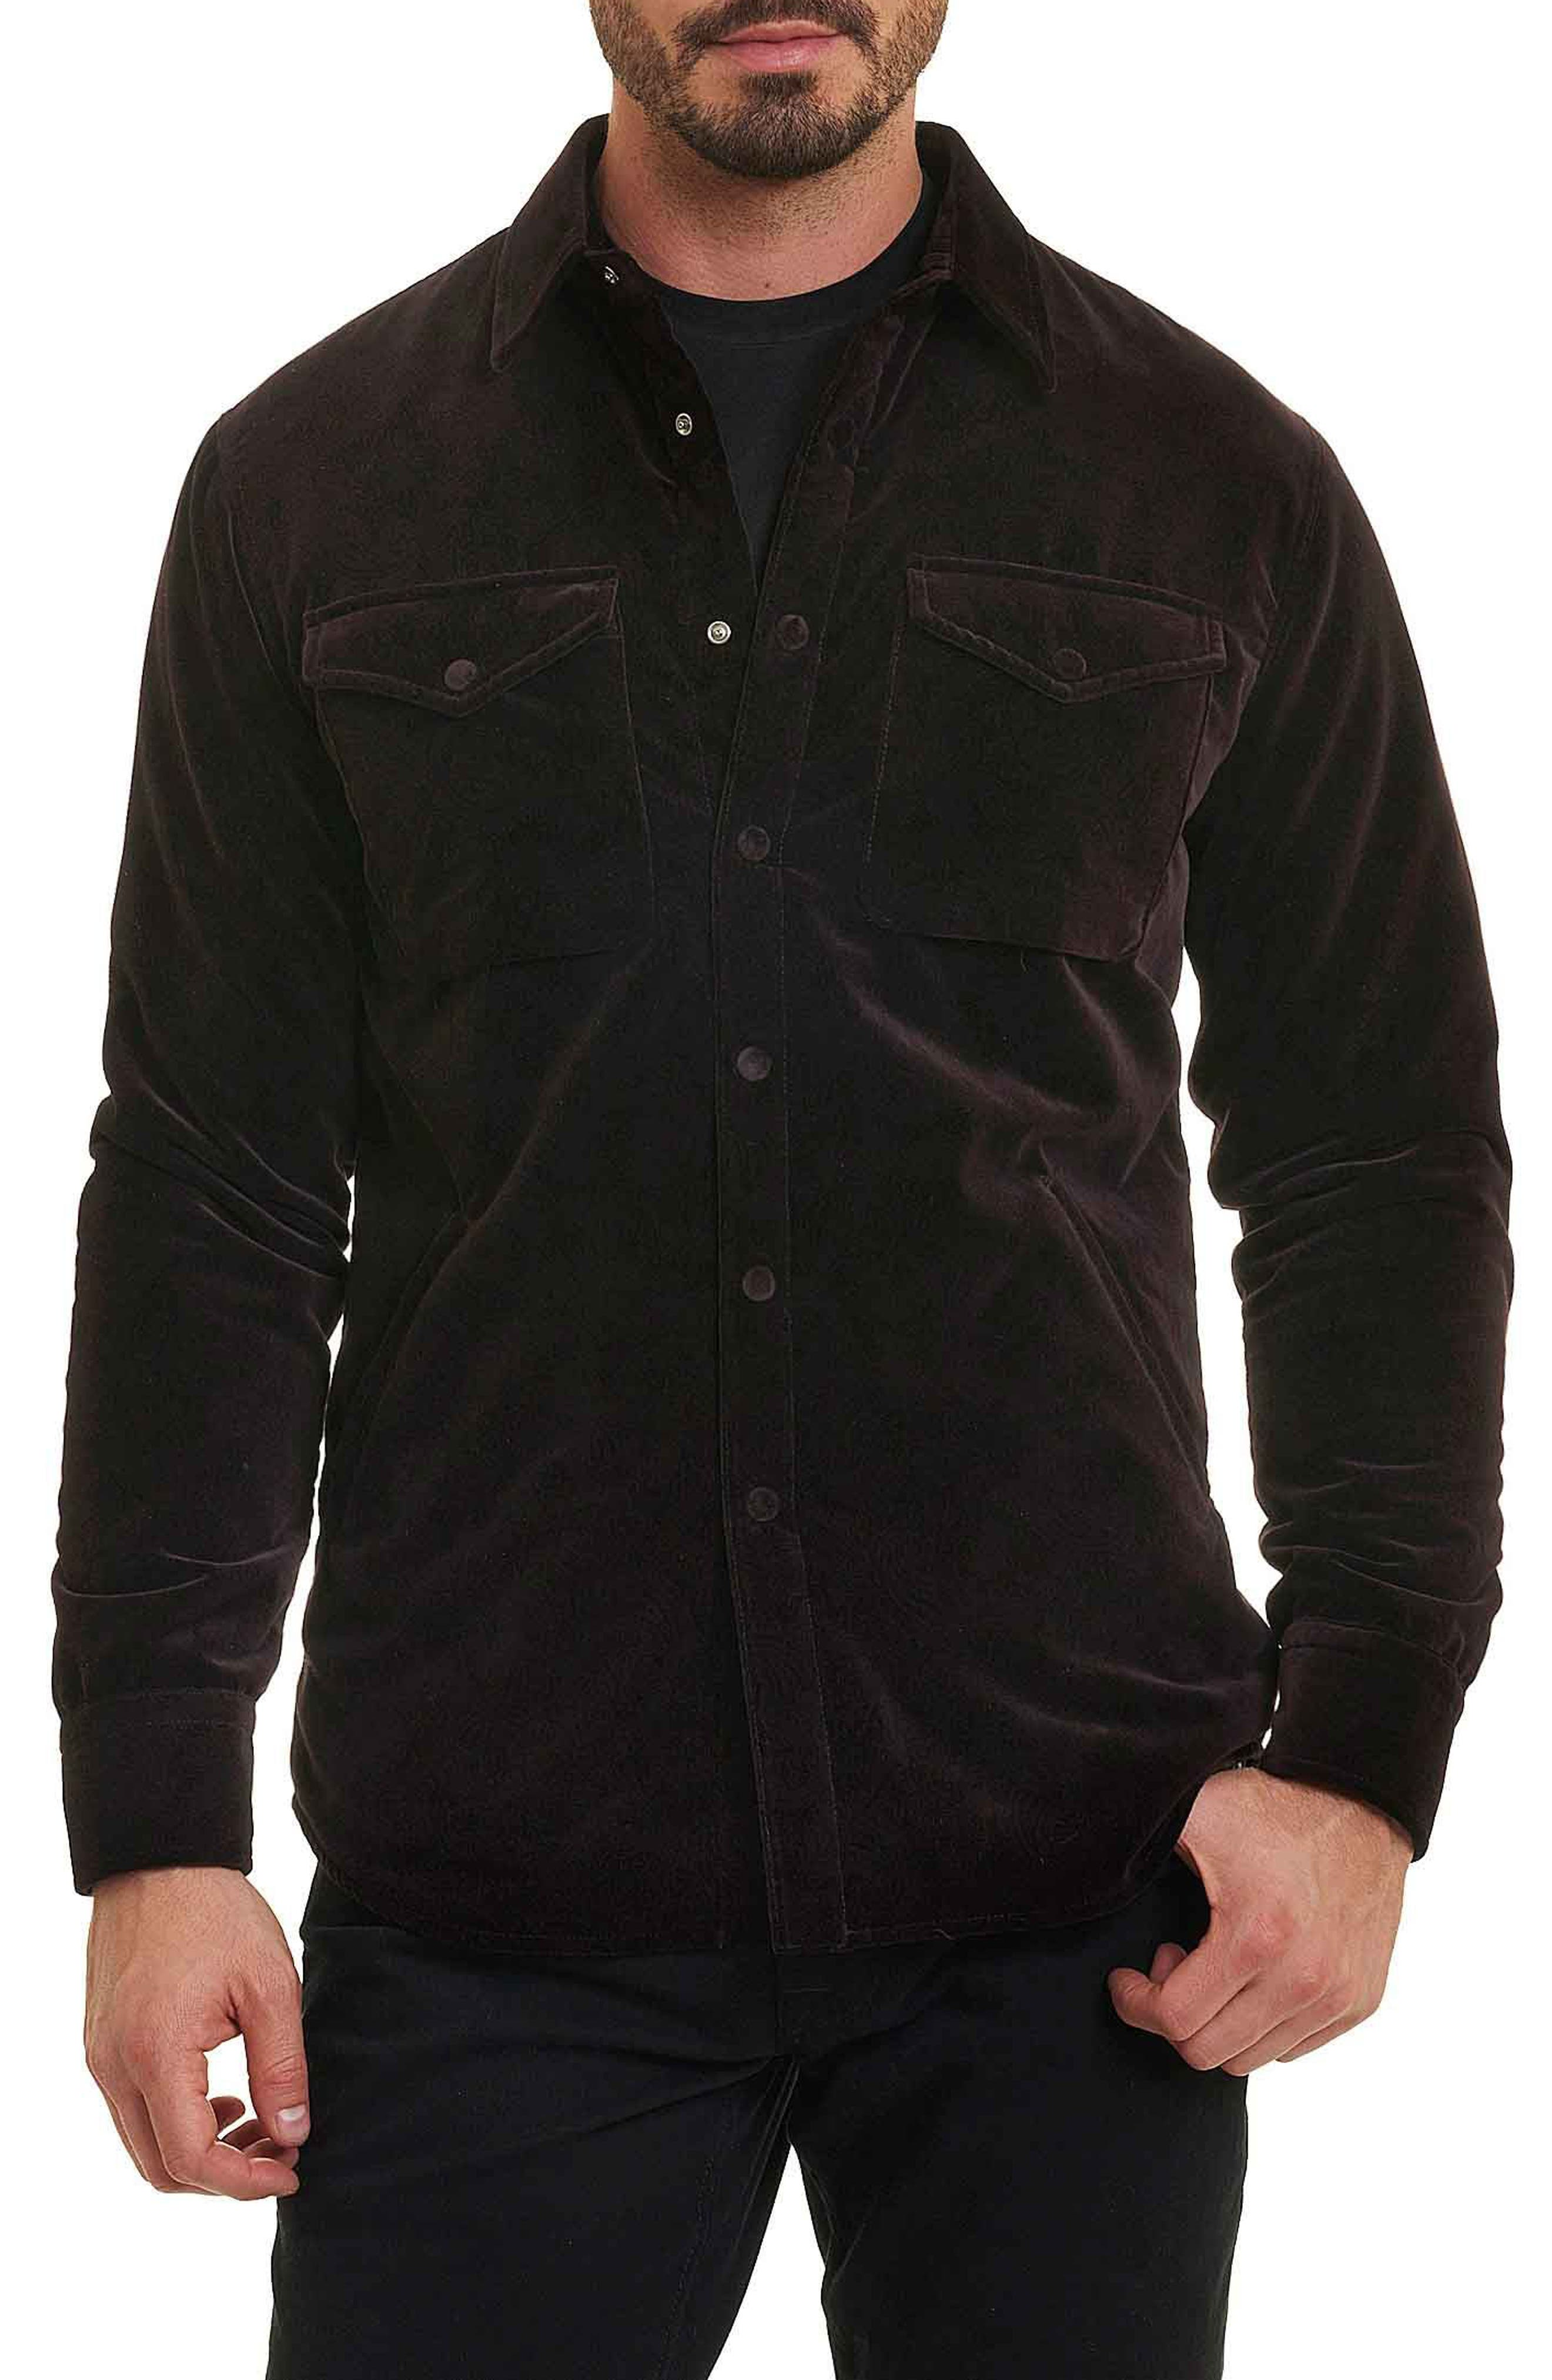 Carnaby Slim Fit Shirt Jacket,                         Main,                         color, EGGPLANT